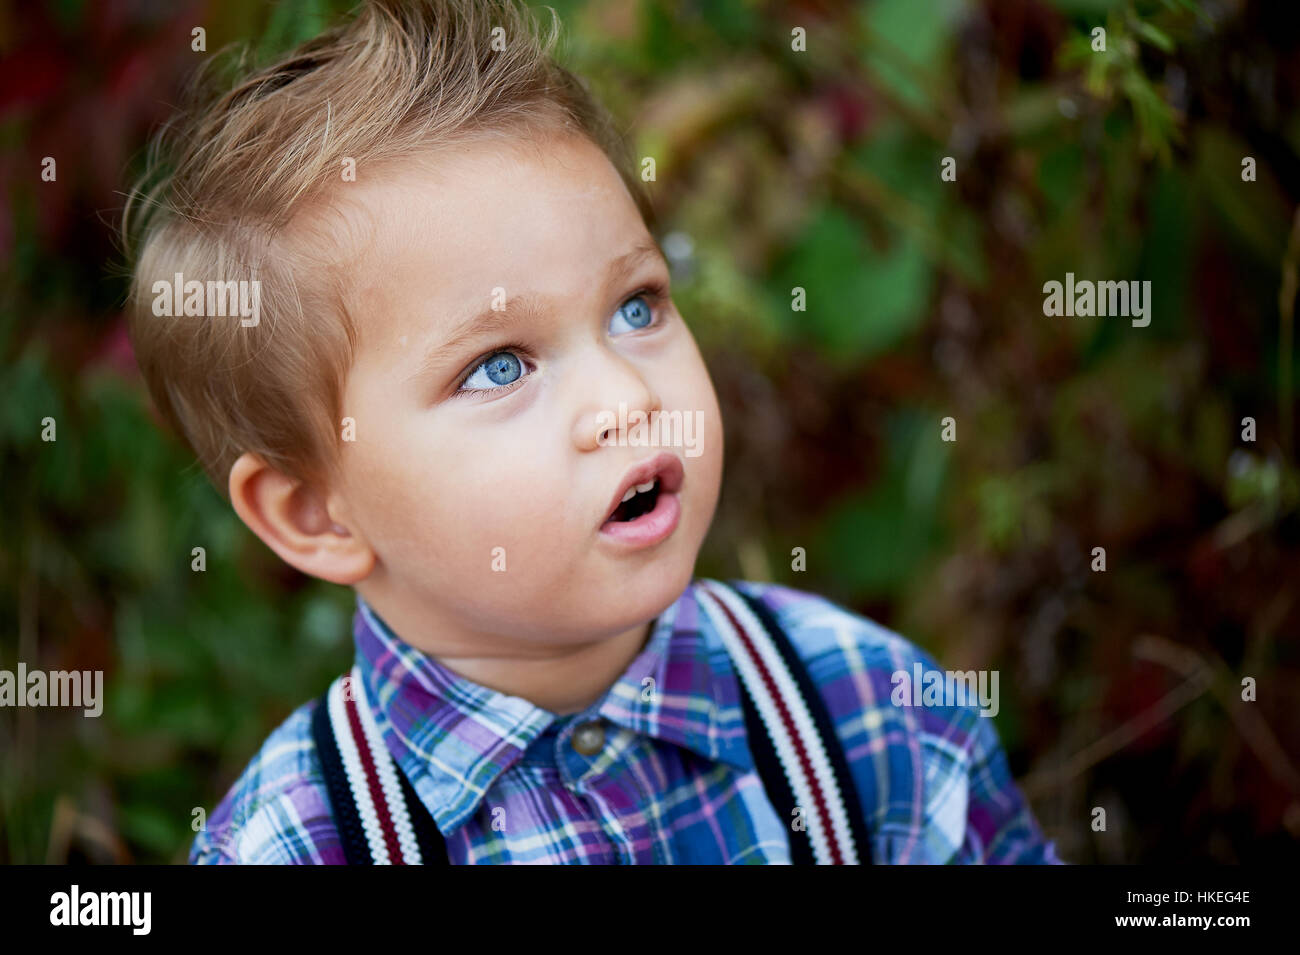 589820a02 Portrait of cute little boy with big blue eyes and a stylish Stock ...